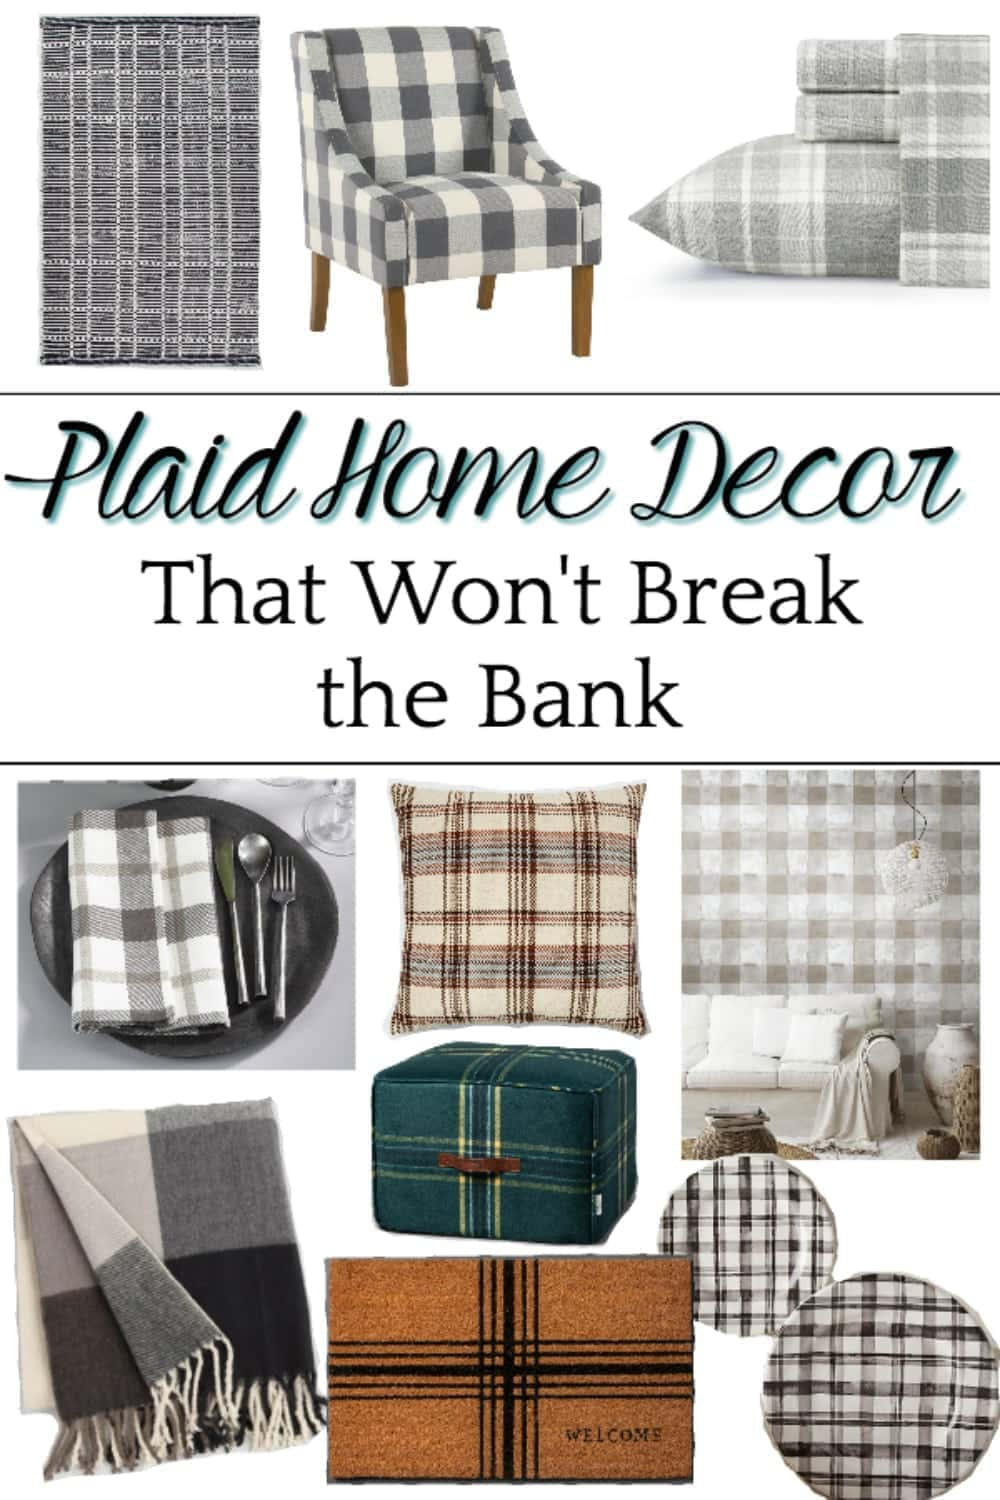 A Shopping Guide With Some Of The Best Resources For Plaid Home Decor To Cozy Up